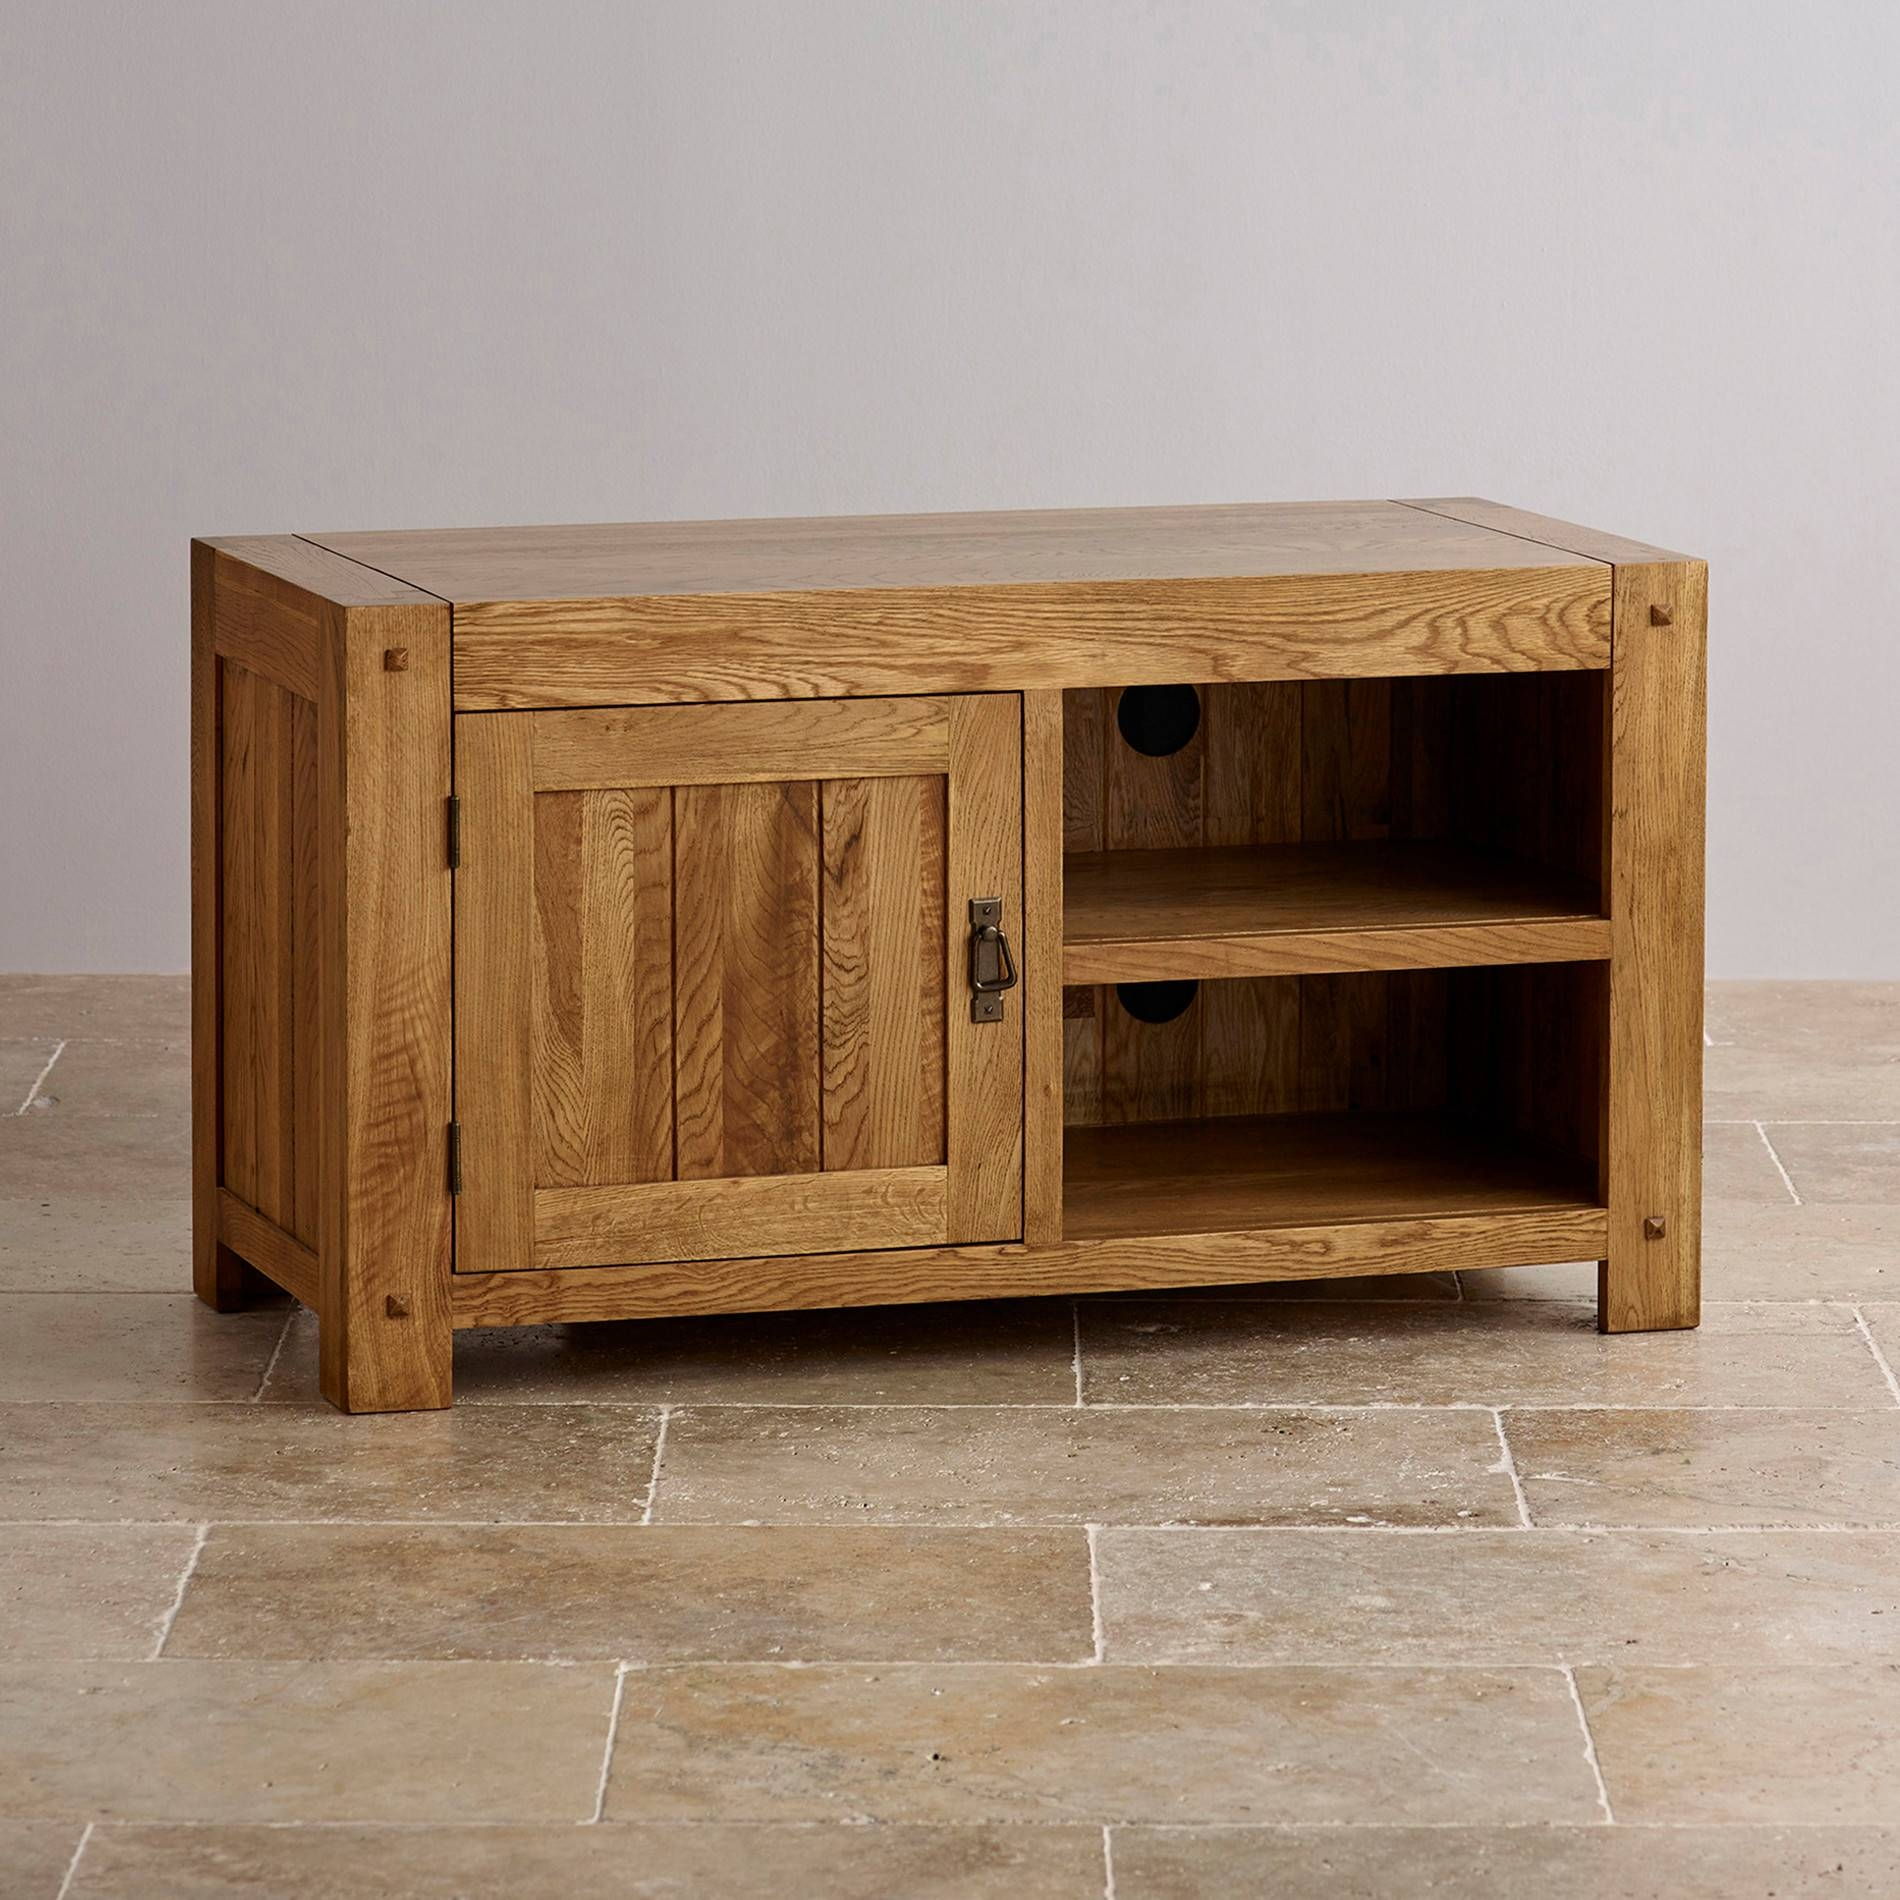 Living Room Furniture Cabinets: Best 15+ Of Rustic Wood Tv Cabinets